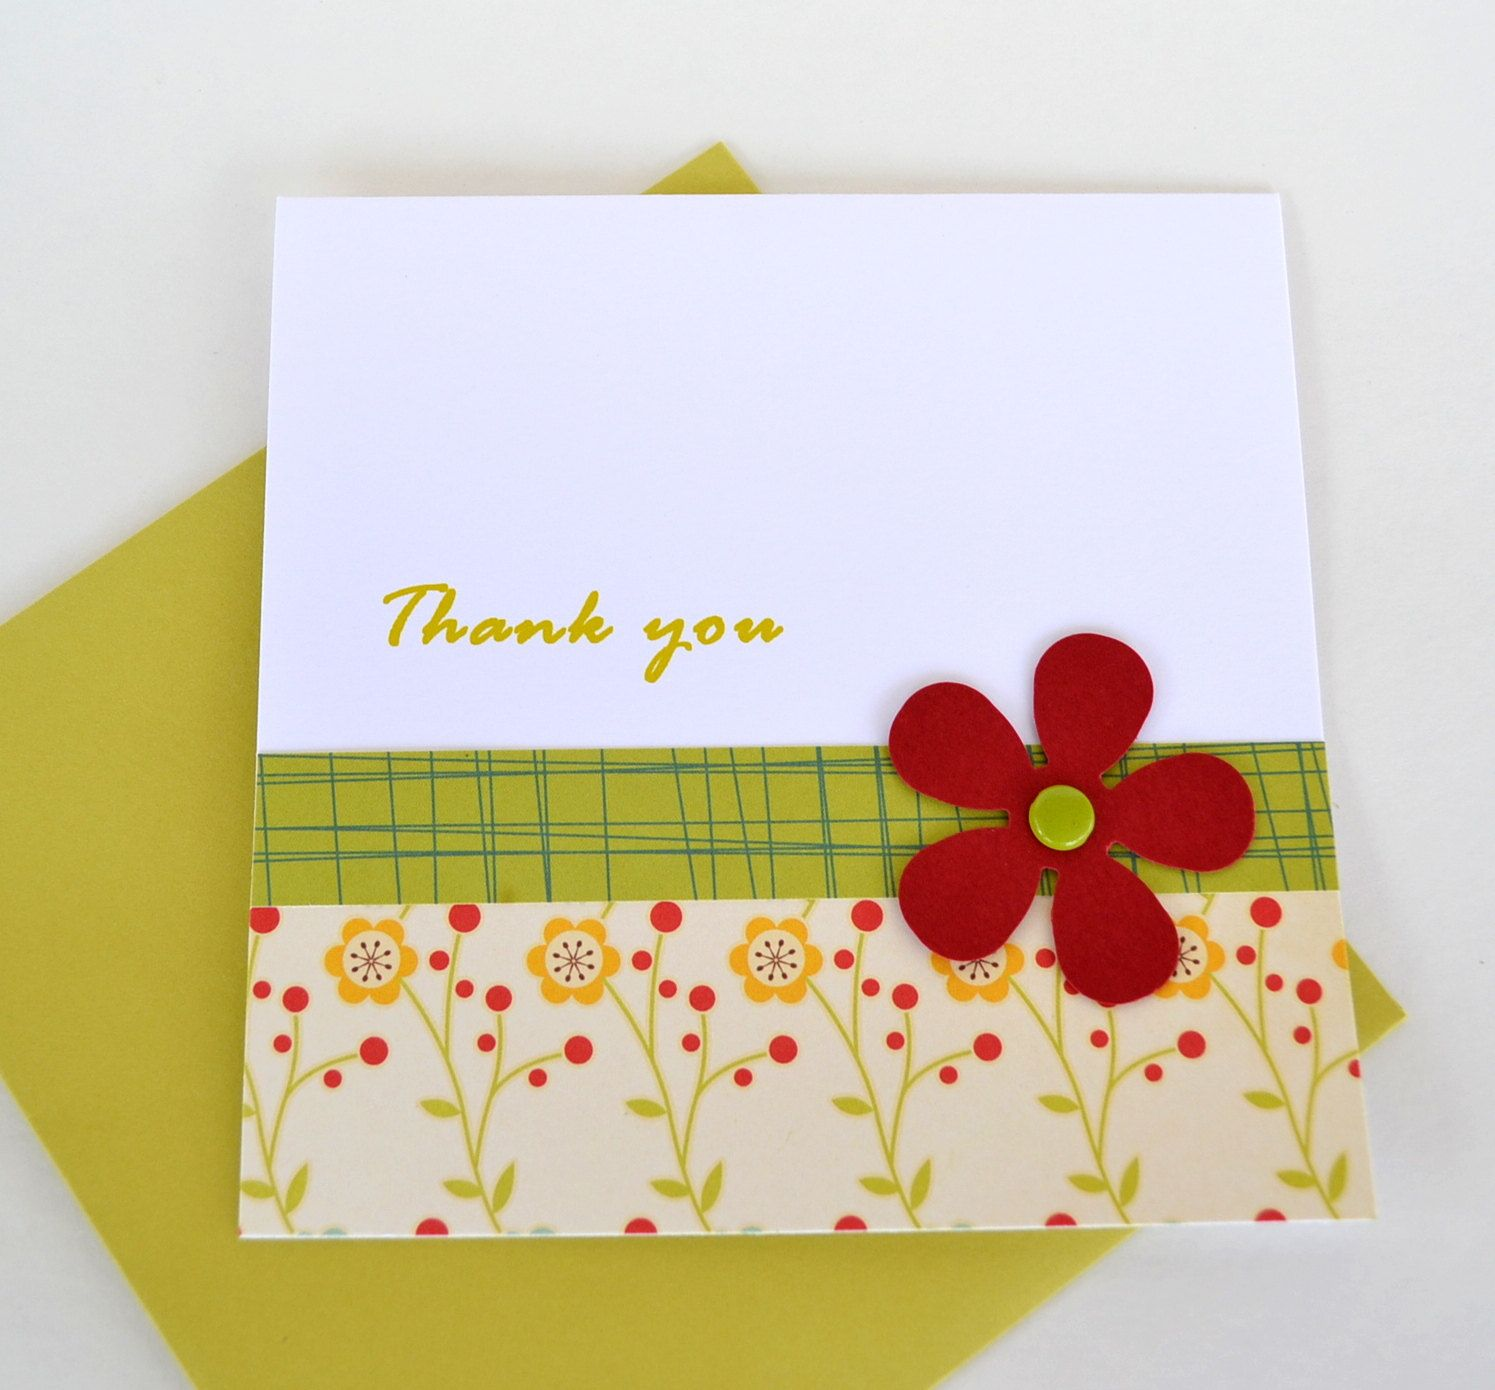 Flower Thank You Handmade Card Homemade Cards Cards Your Cards